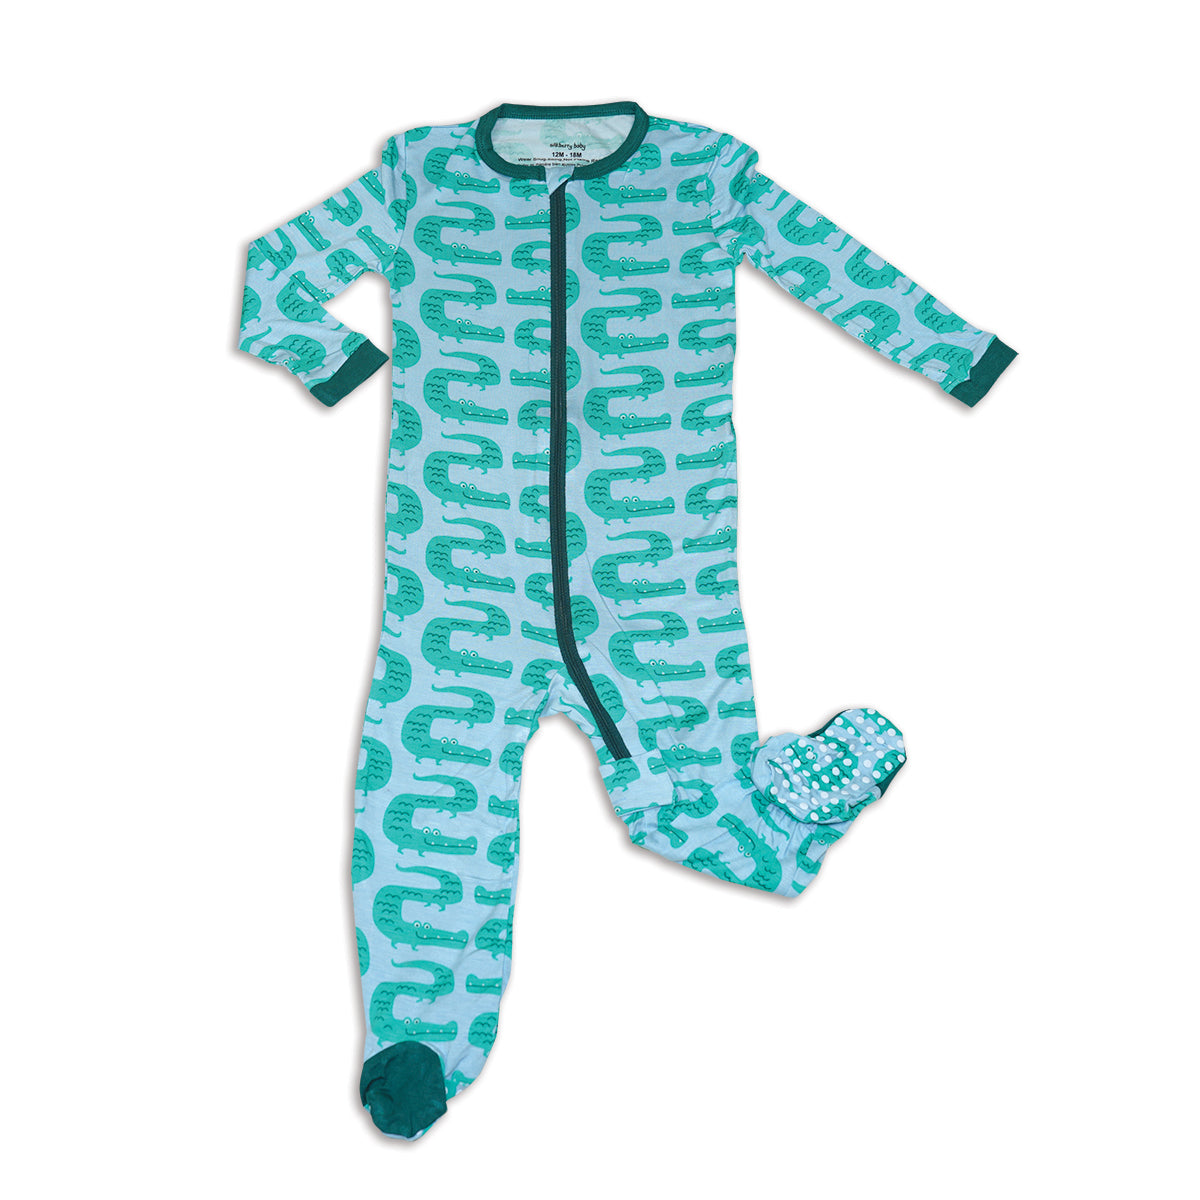 Bamboo Zip up Footed Sleeper (ZigZag Croc Print)